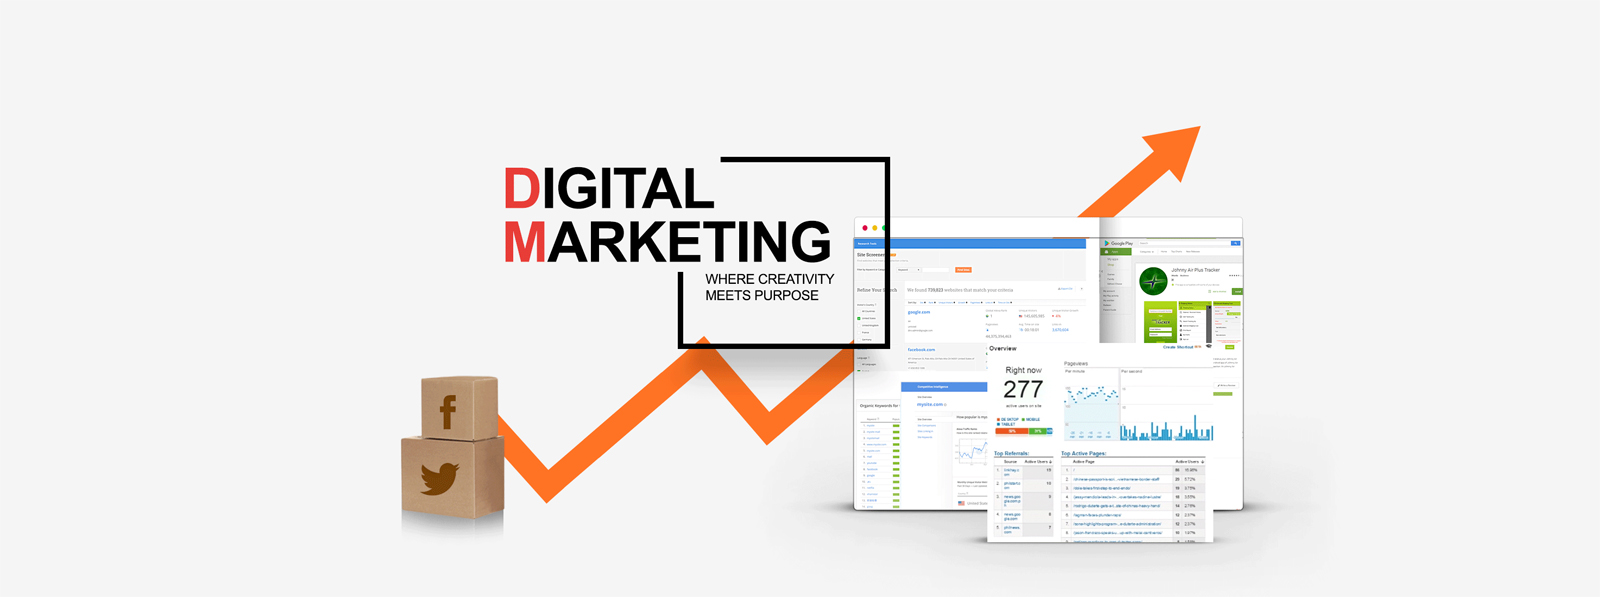 Benefits of digital marketing Atlantech Global